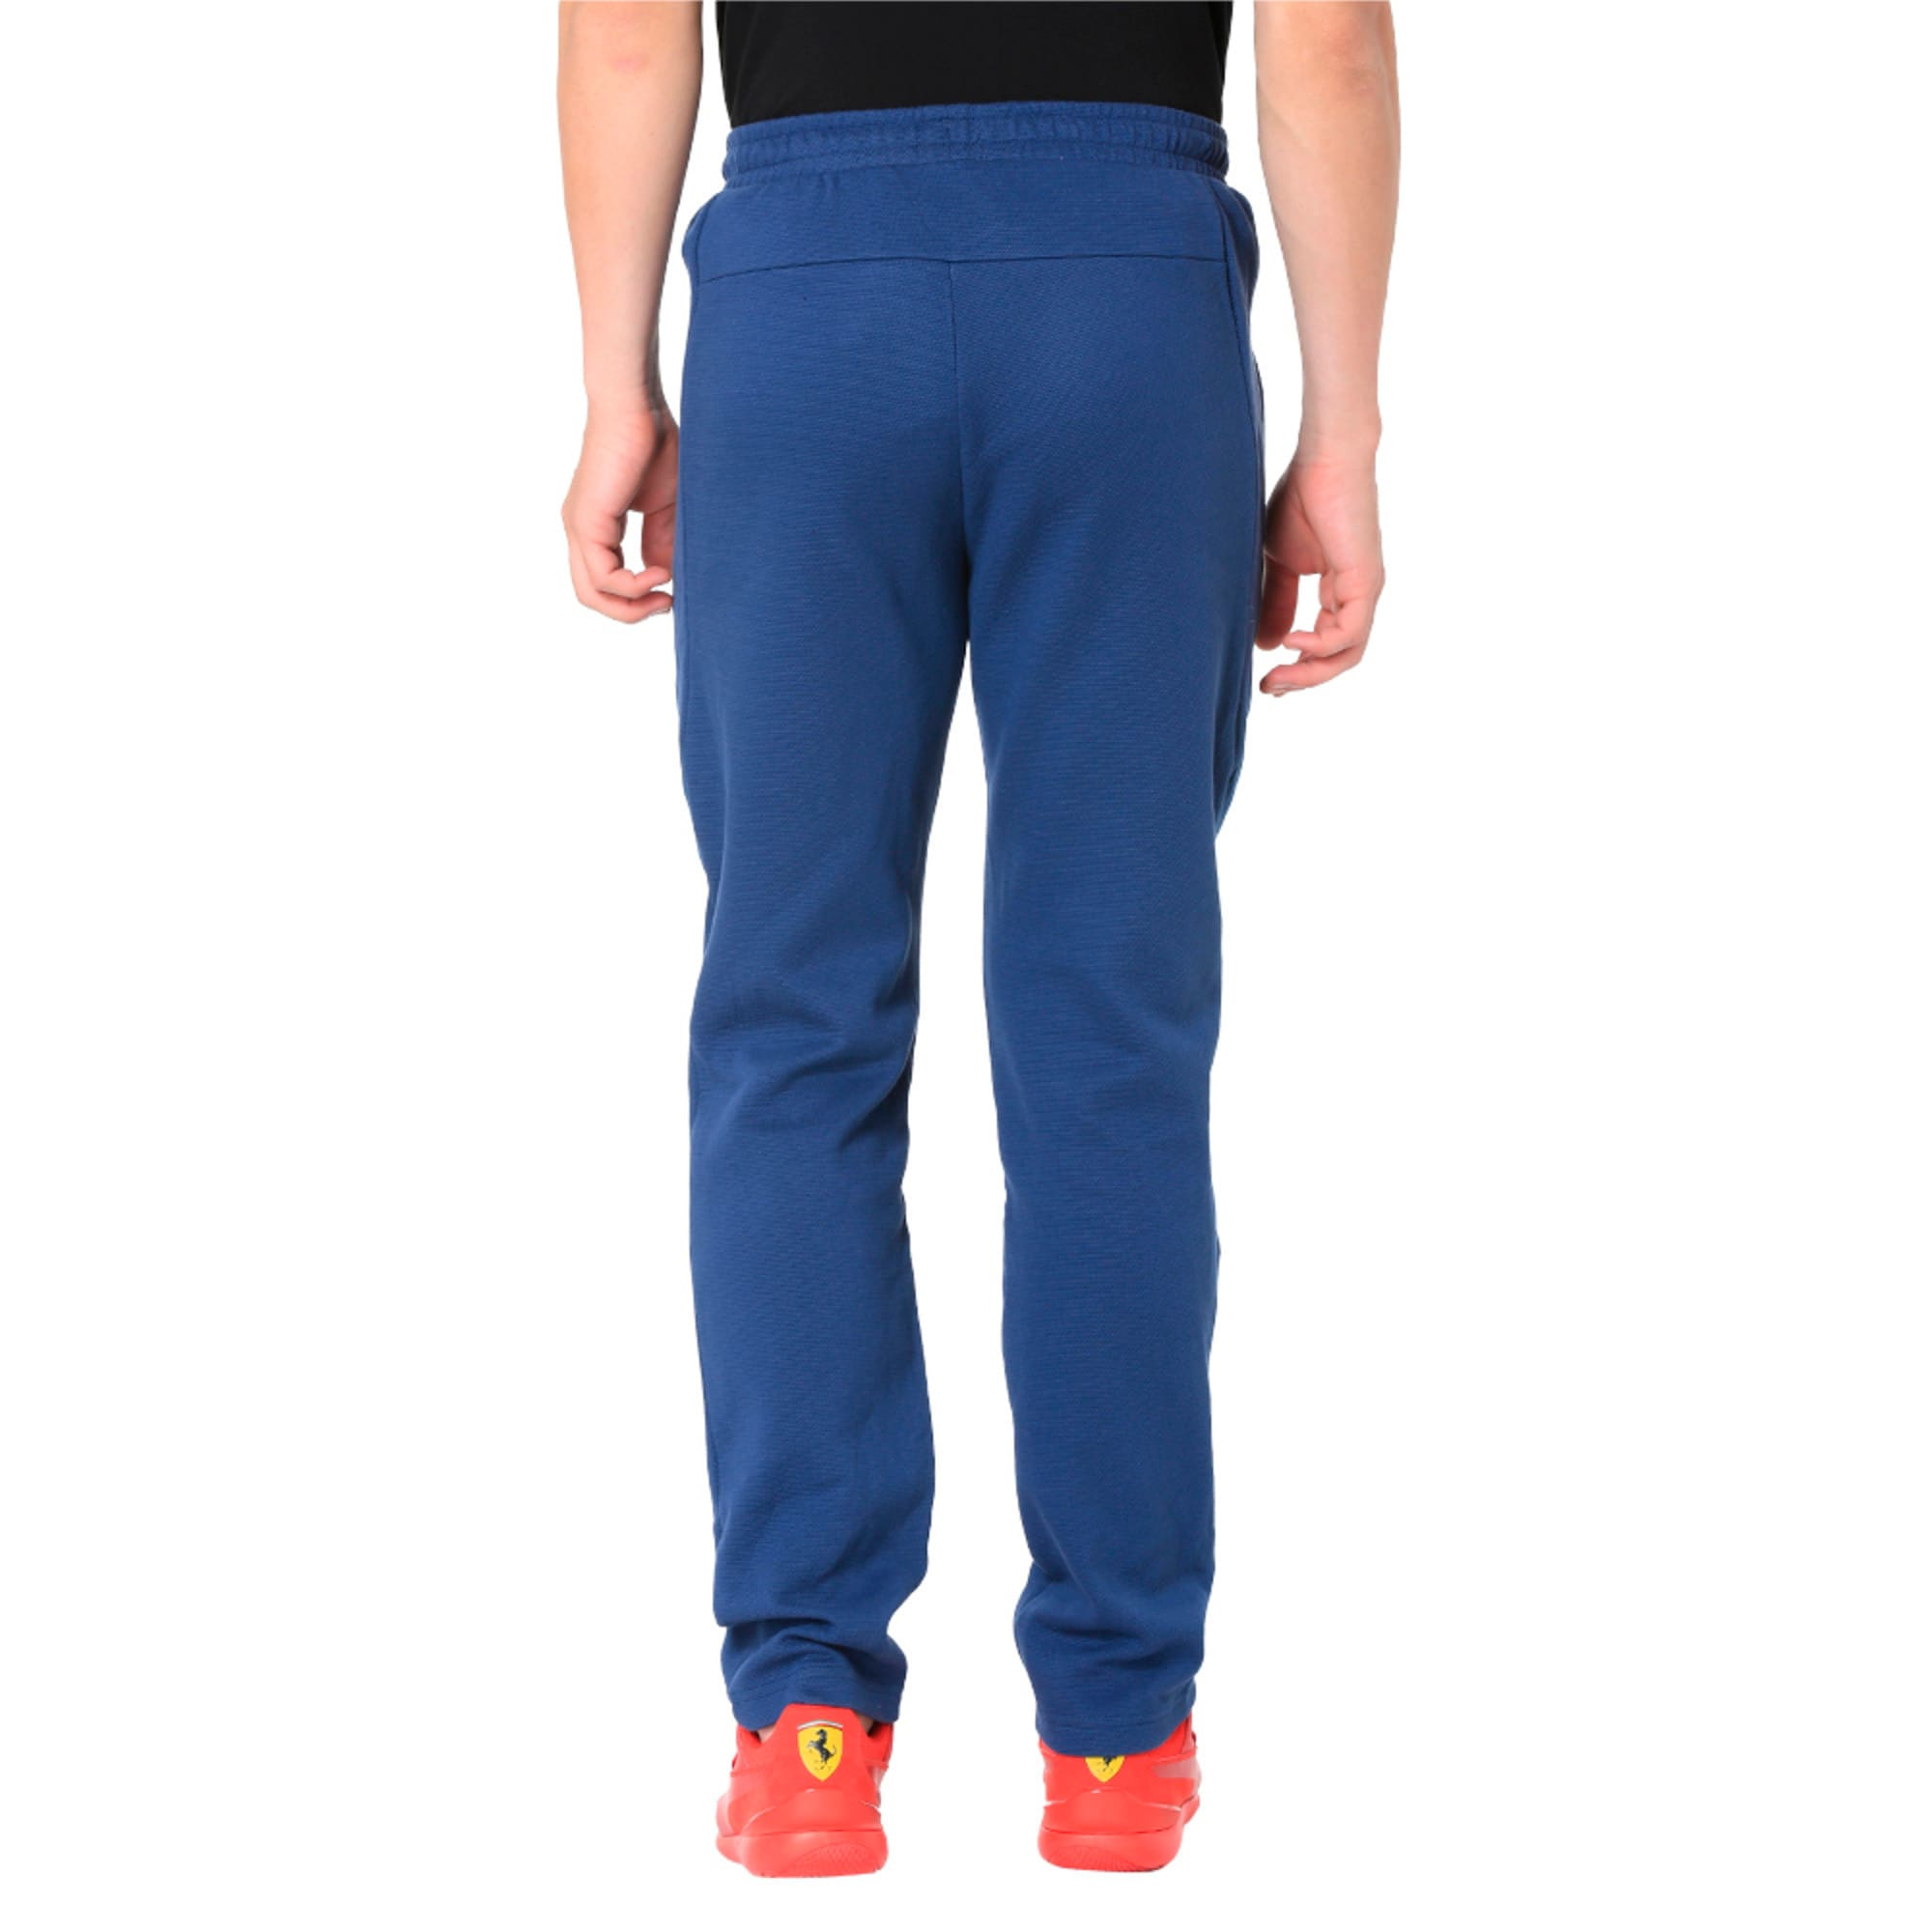 Thumbnail 8 of Ferrari Lifestyle Men's Sweatpants, Sargasso Sea, medium-IND